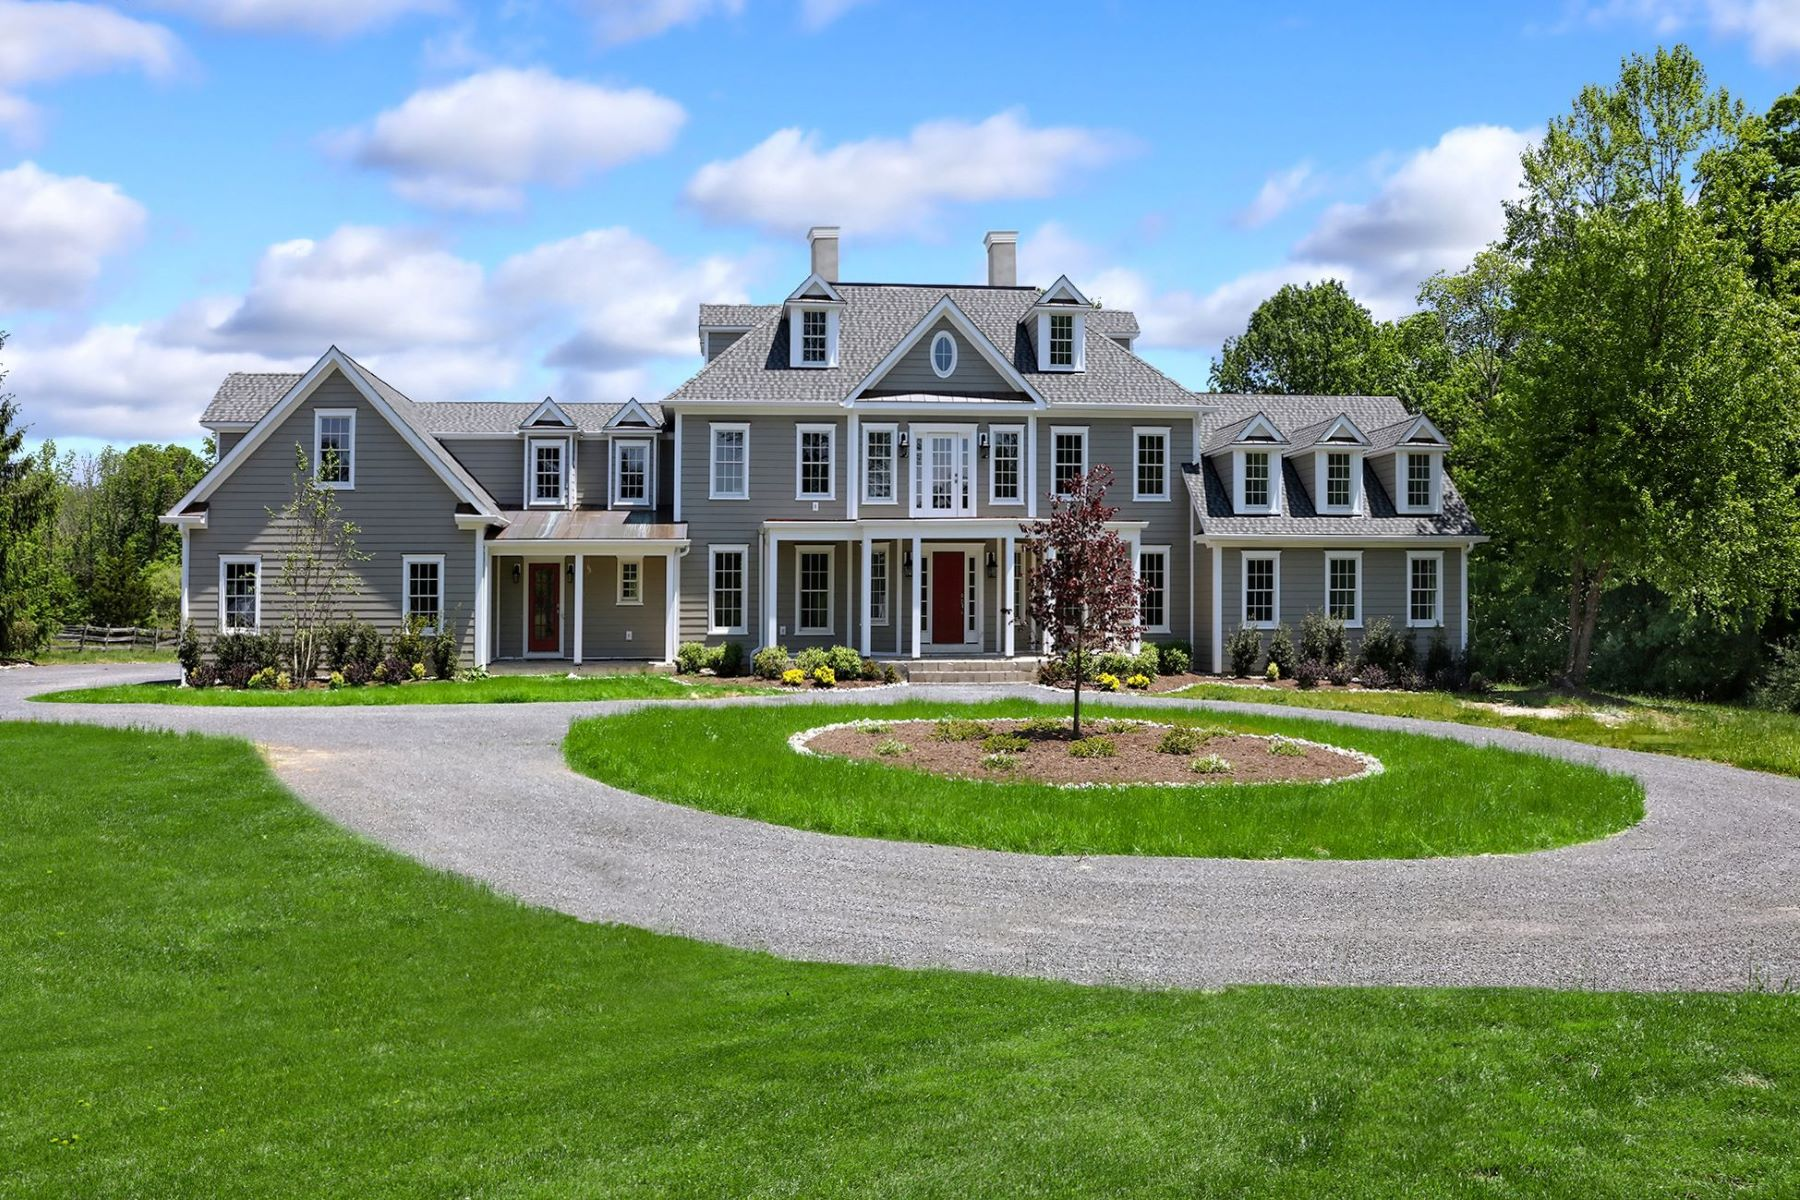 Single Family Homes pour l Vente à Every Amenity in this Spectacular Estate-Style Home 114 Federal Twist Road, Stockton, New Jersey 08559 États-Unis